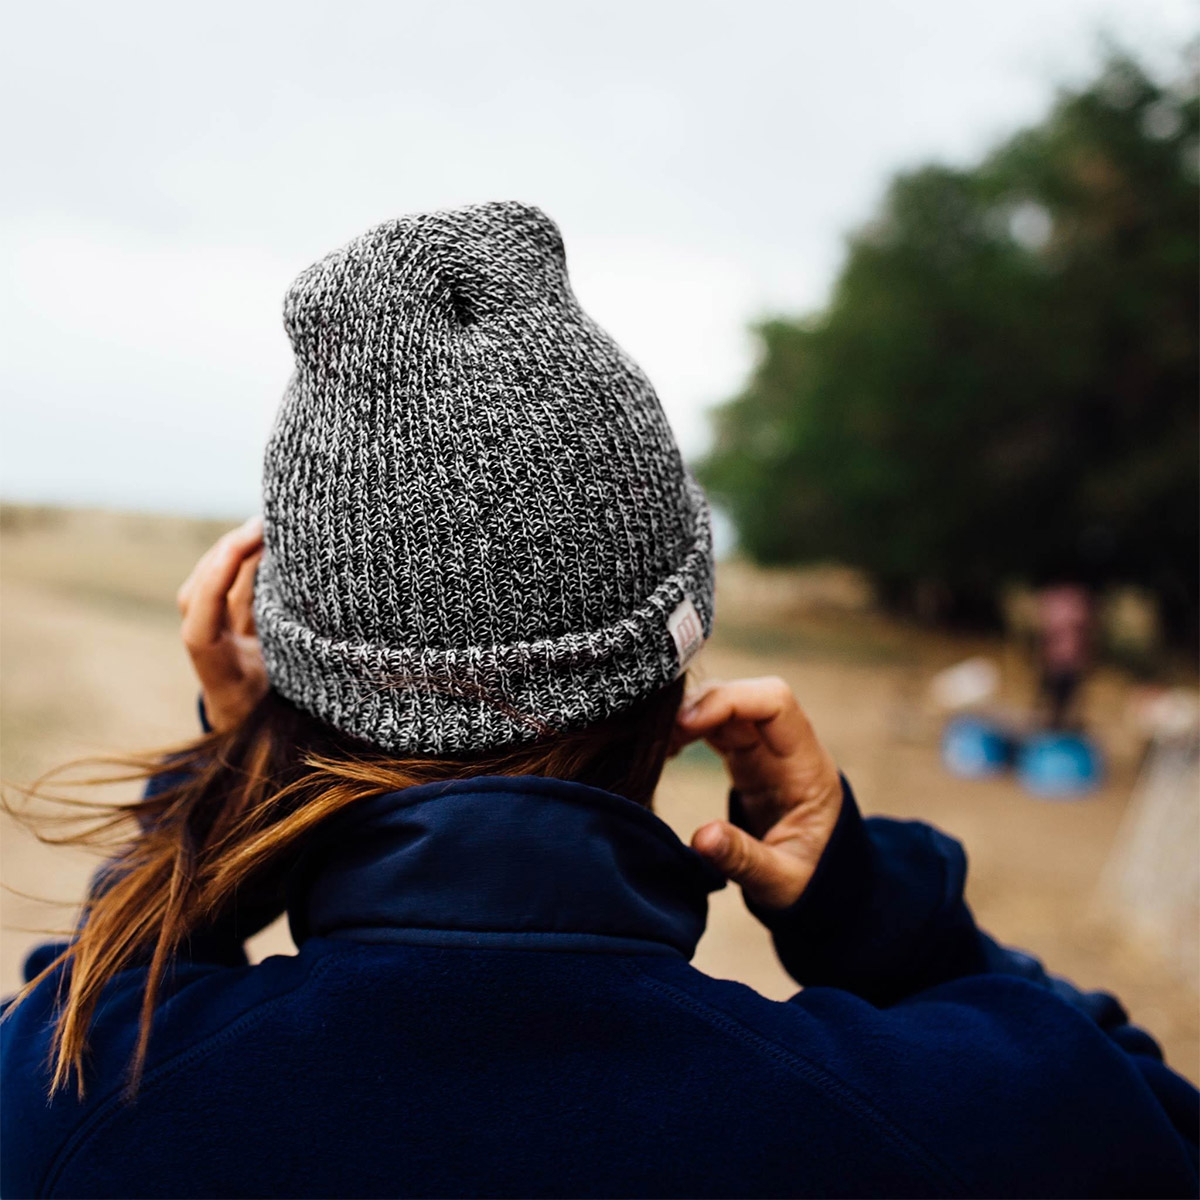 Topo Designs Watch Cap, wonderfully simple cap made with soft acrylic yarn to keep you warm